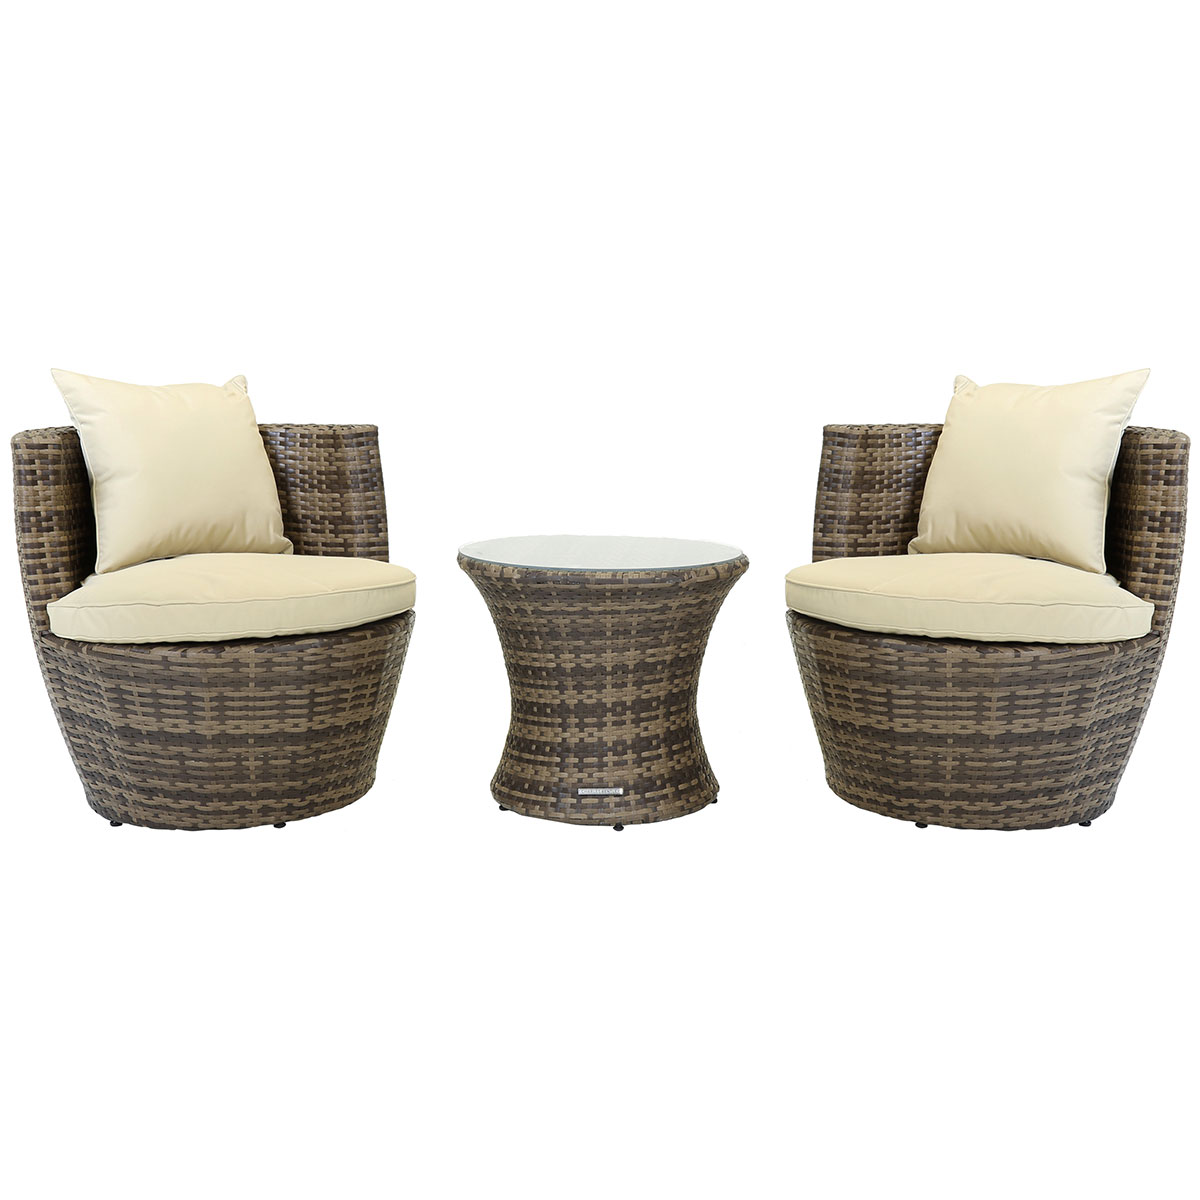 Charles Bentley 3 Piece Rattan Stacking Outdoor Patio. Charles Bentley 3 Piece Rattan Stacking Outdoor Patio Furniture